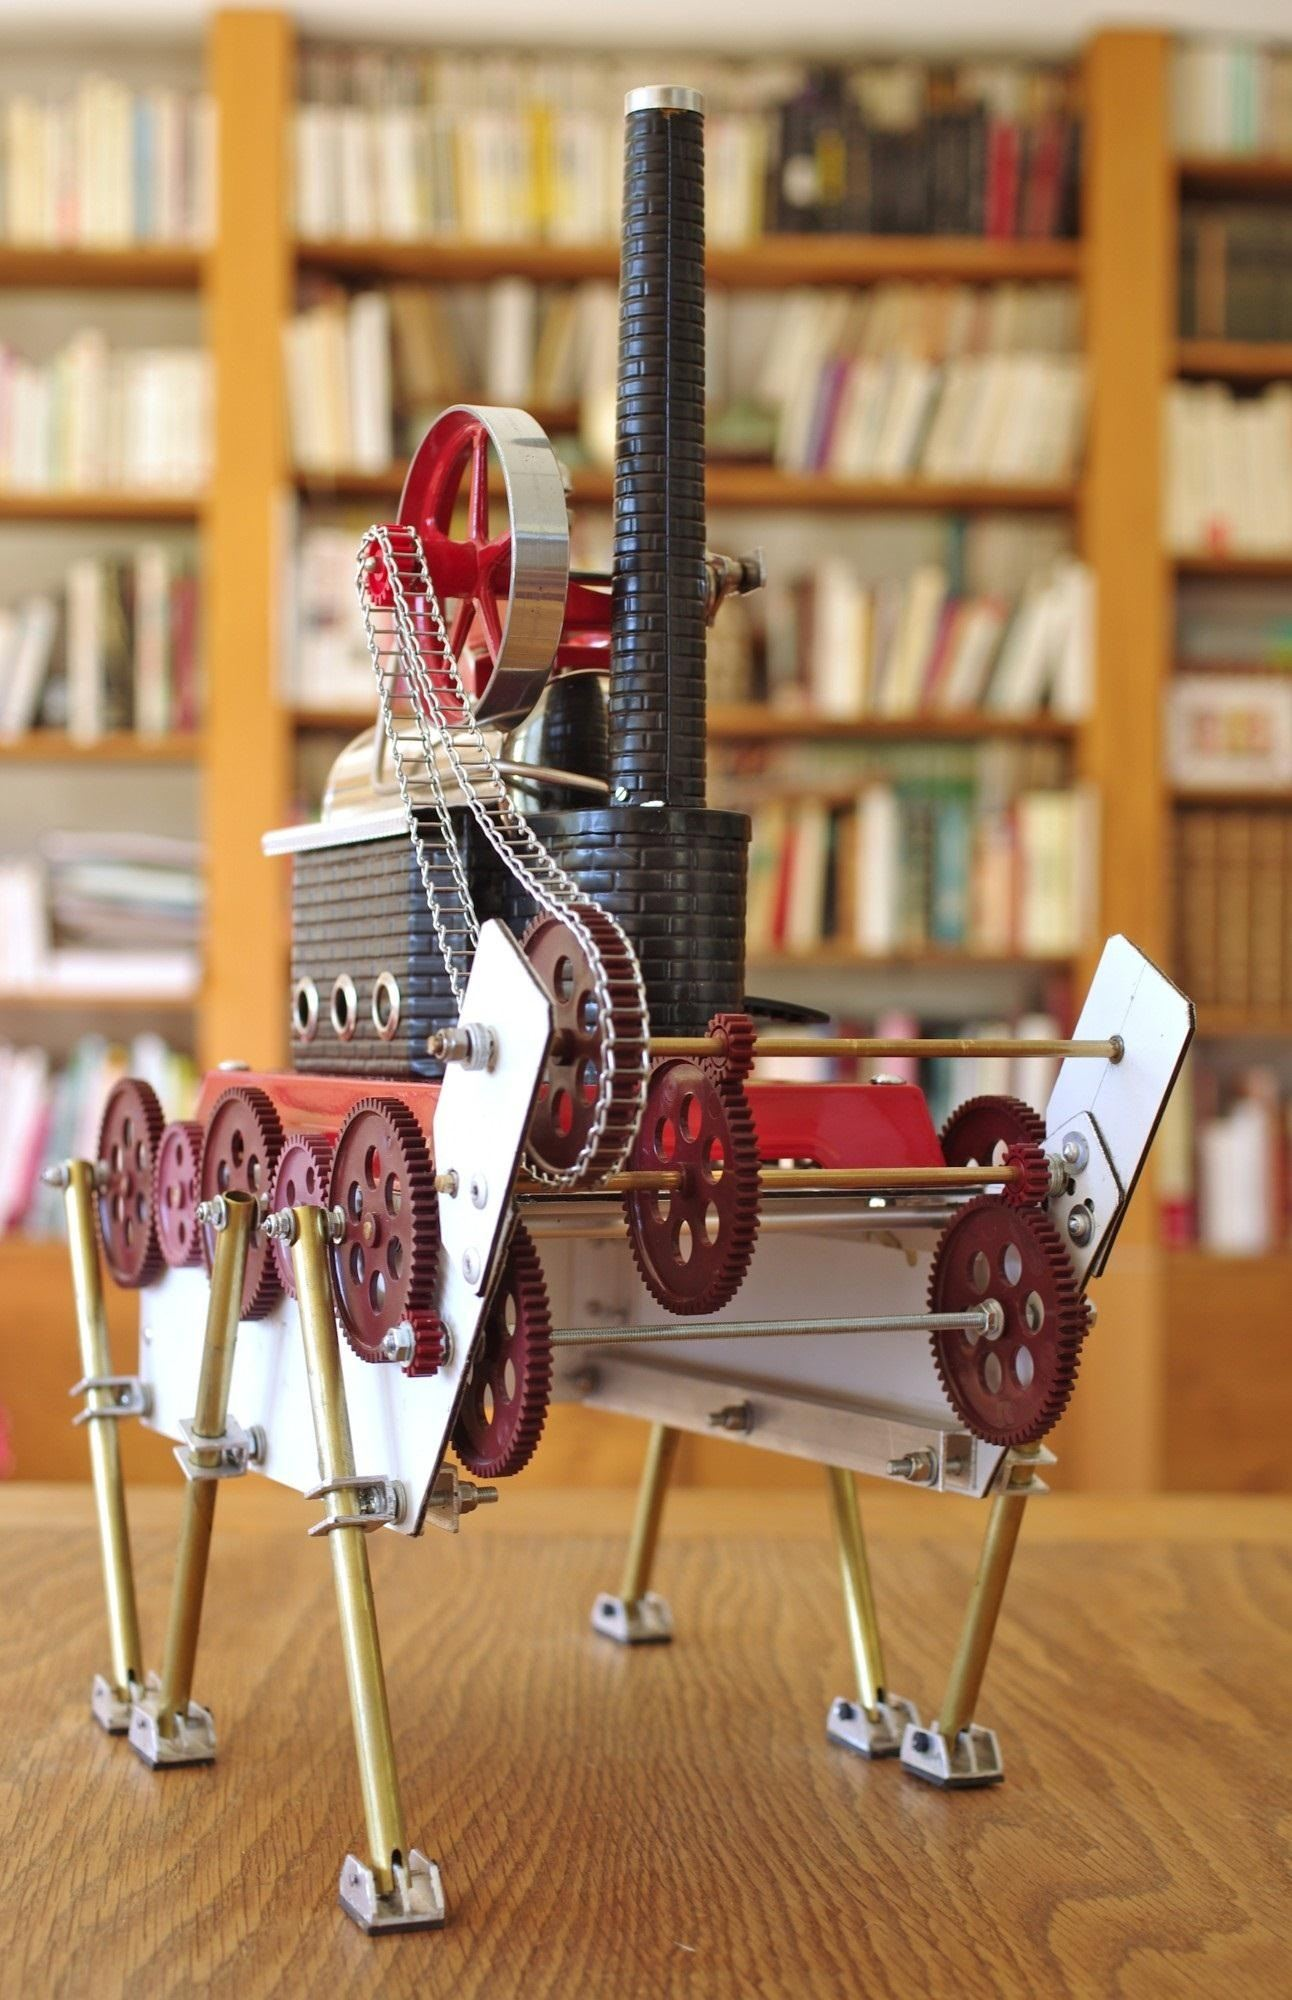 Meet the Steam Ant: A Steampunk-Inspired Hexapod Robot That's Actually Powered by Steam!